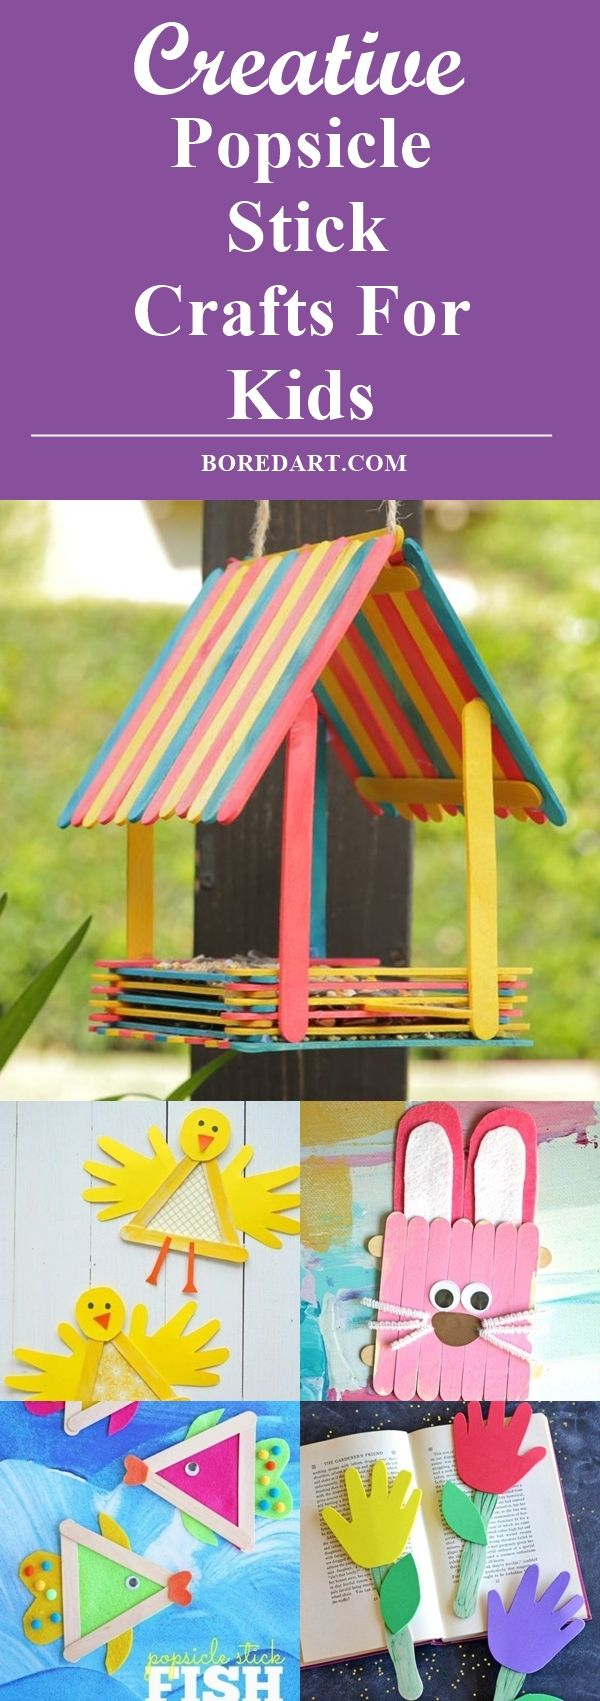 Photo of 40 Creative Popsicle Stick Crafts For Kids – Bored Art